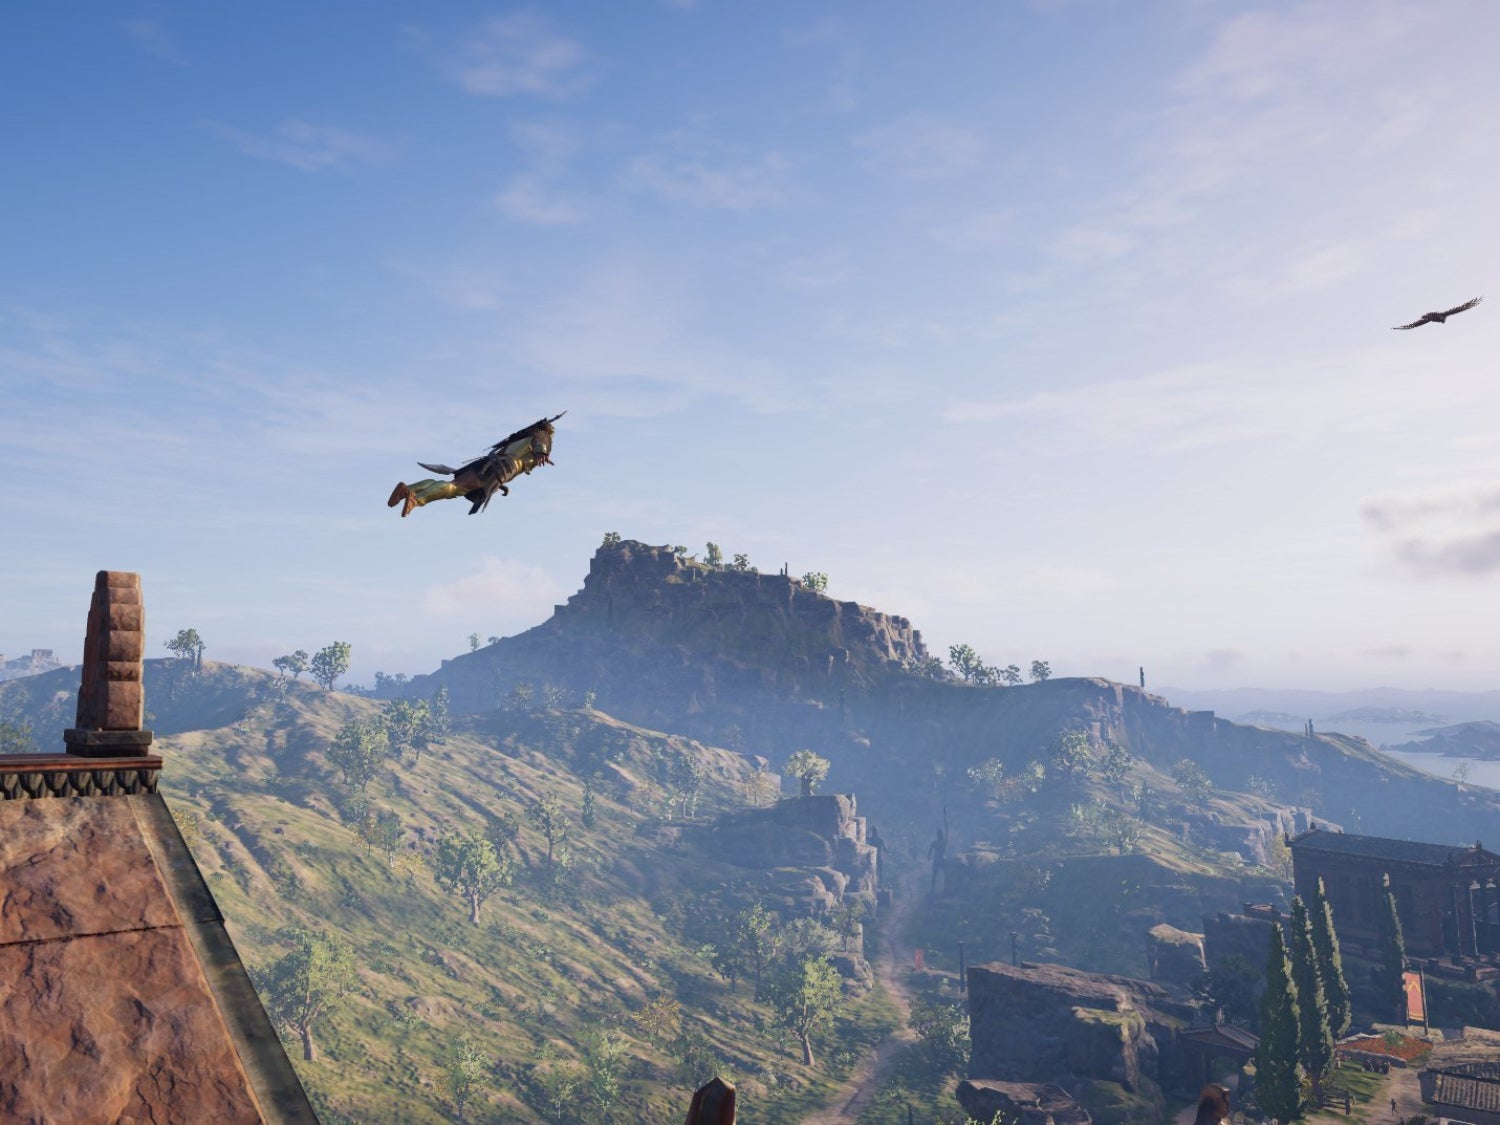 Kassandra taking a leap of faith from the Temple of Athena in Sparta in Assassin's Creed Odyssey